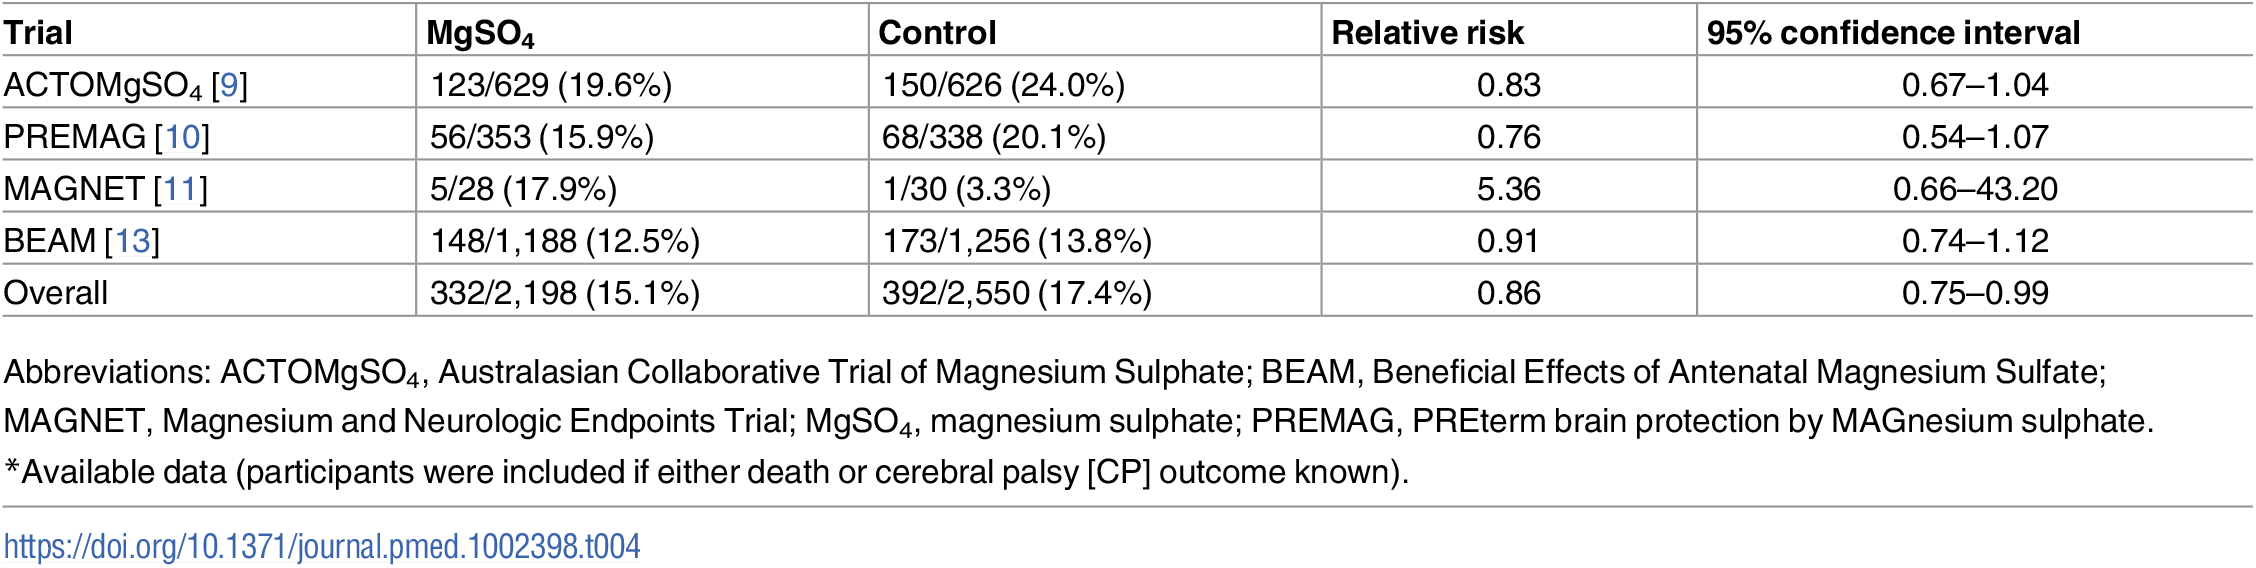 Death or cerebral palsy (sensitivity analysis: trials with a primary intent of fetal neuroprotection)<em class=&quot;ref&quot;>*</em>.